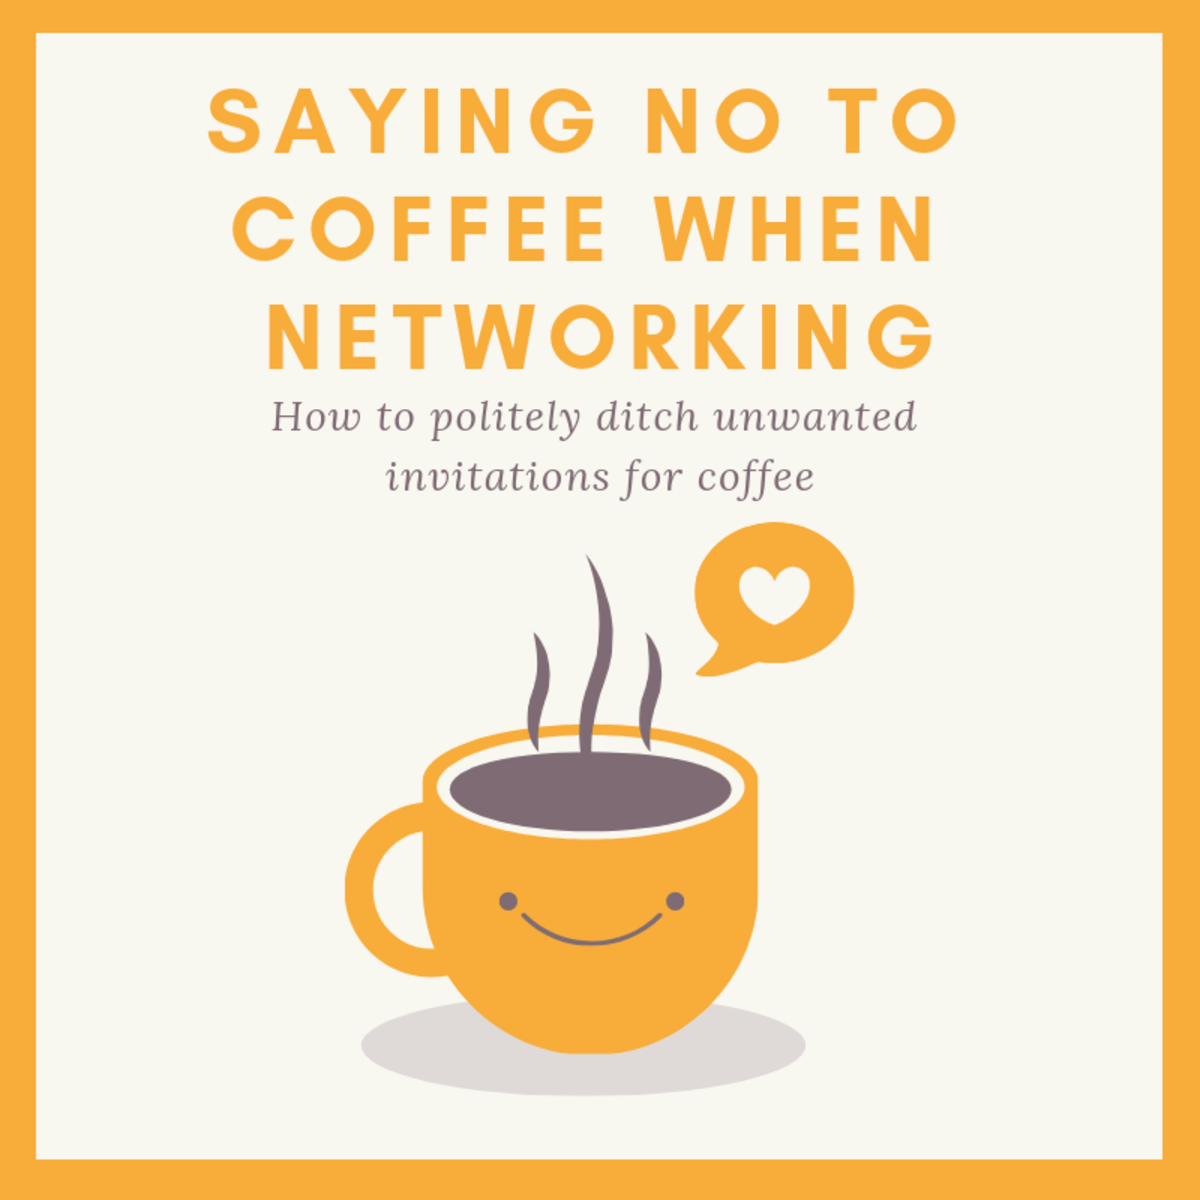 Saying No to Coffee When Networking